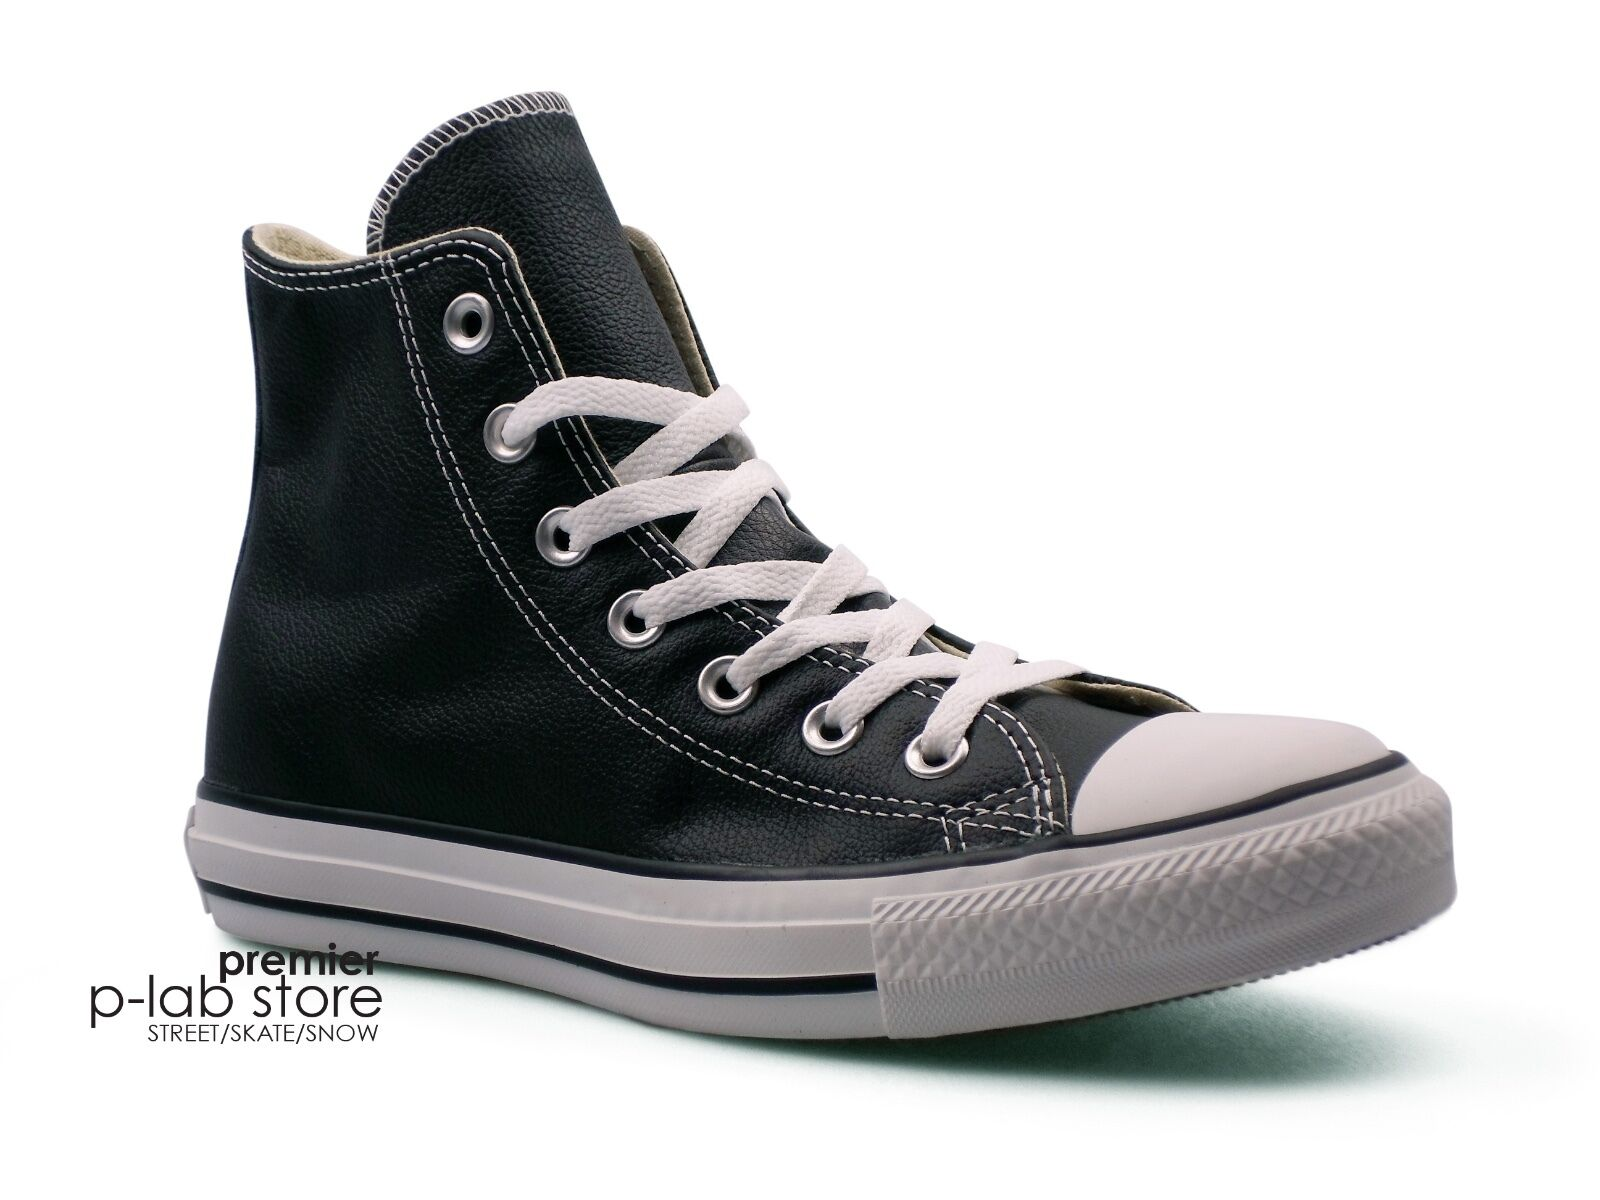 Converse Chuck Taylor All Star Unisex Leather High Top Black Unisex Star Trainers. New f93c91